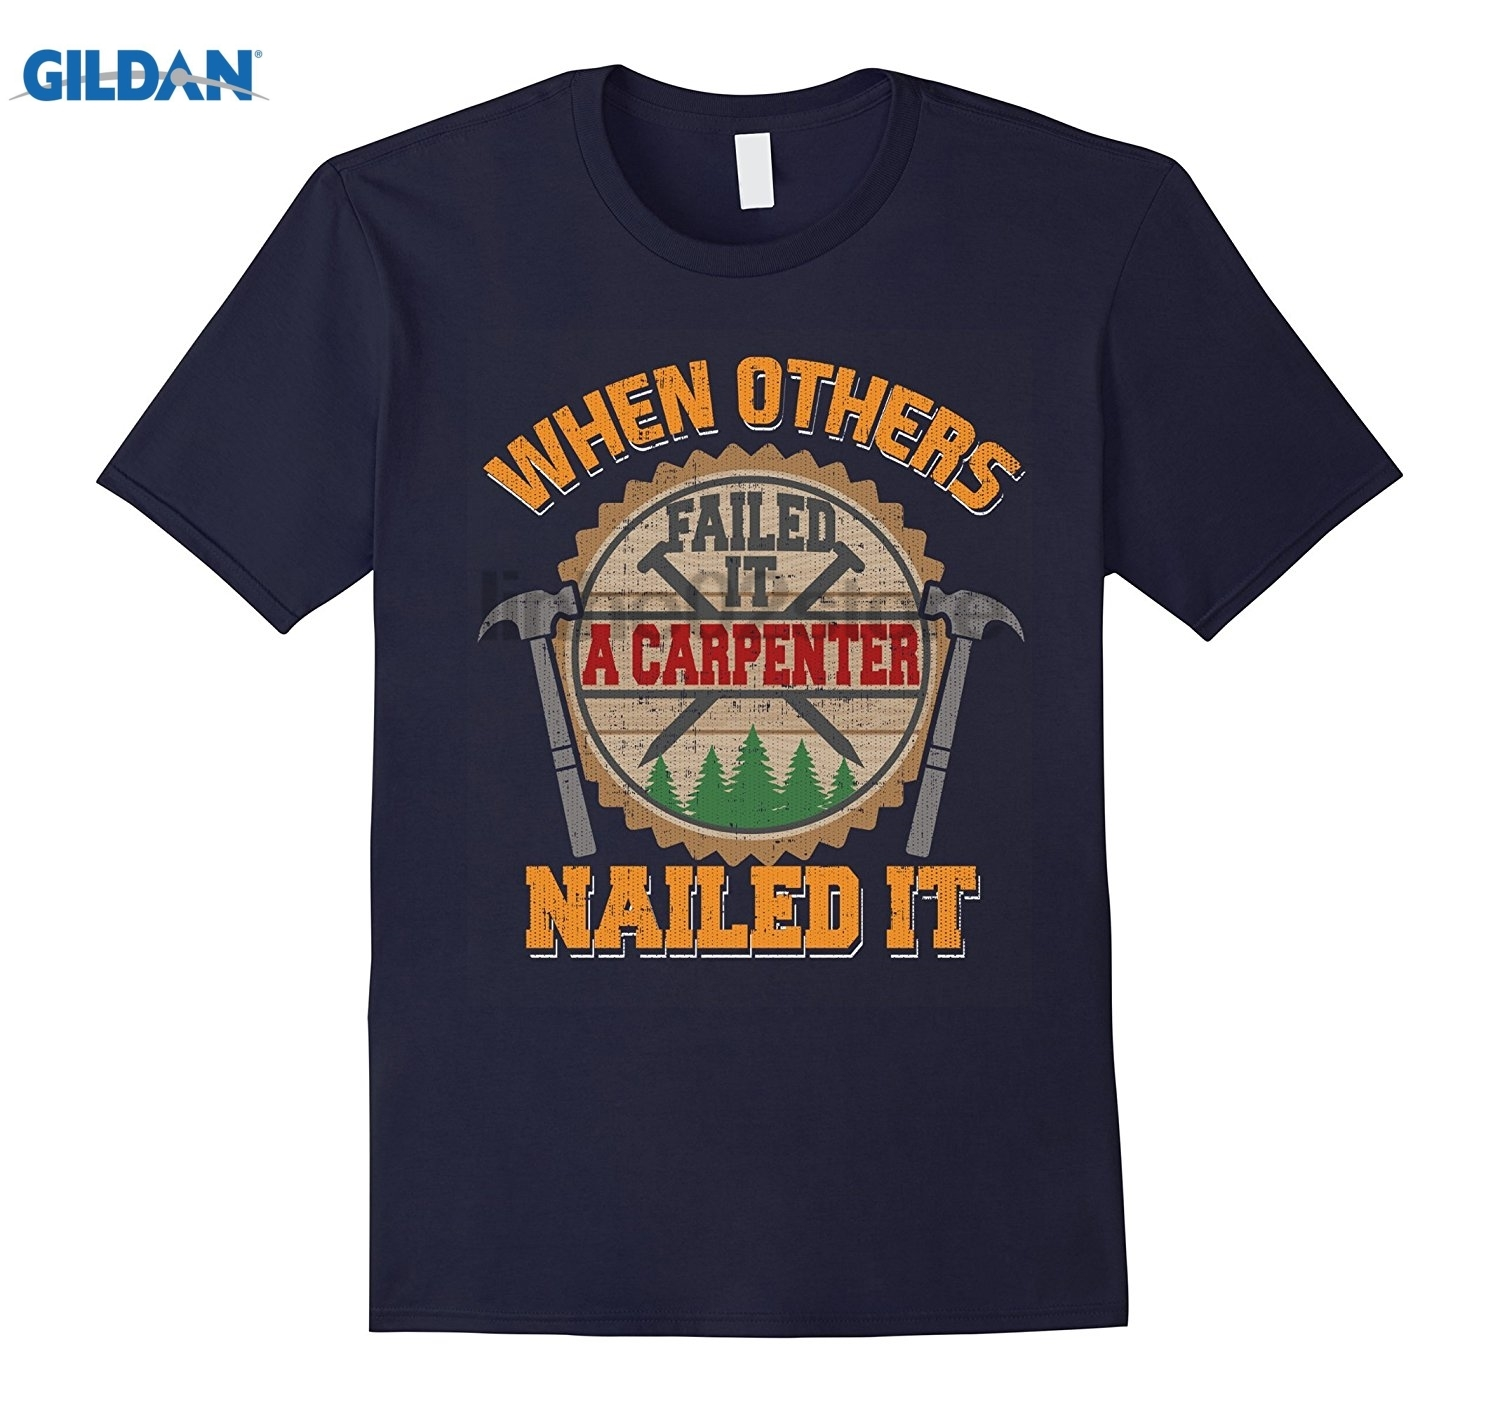 GILDAN When Others Failed It a Capenter Nailed It Tshirt Wood Saw Mothers Day Ms. T-shirt sunglasses women T-shirt